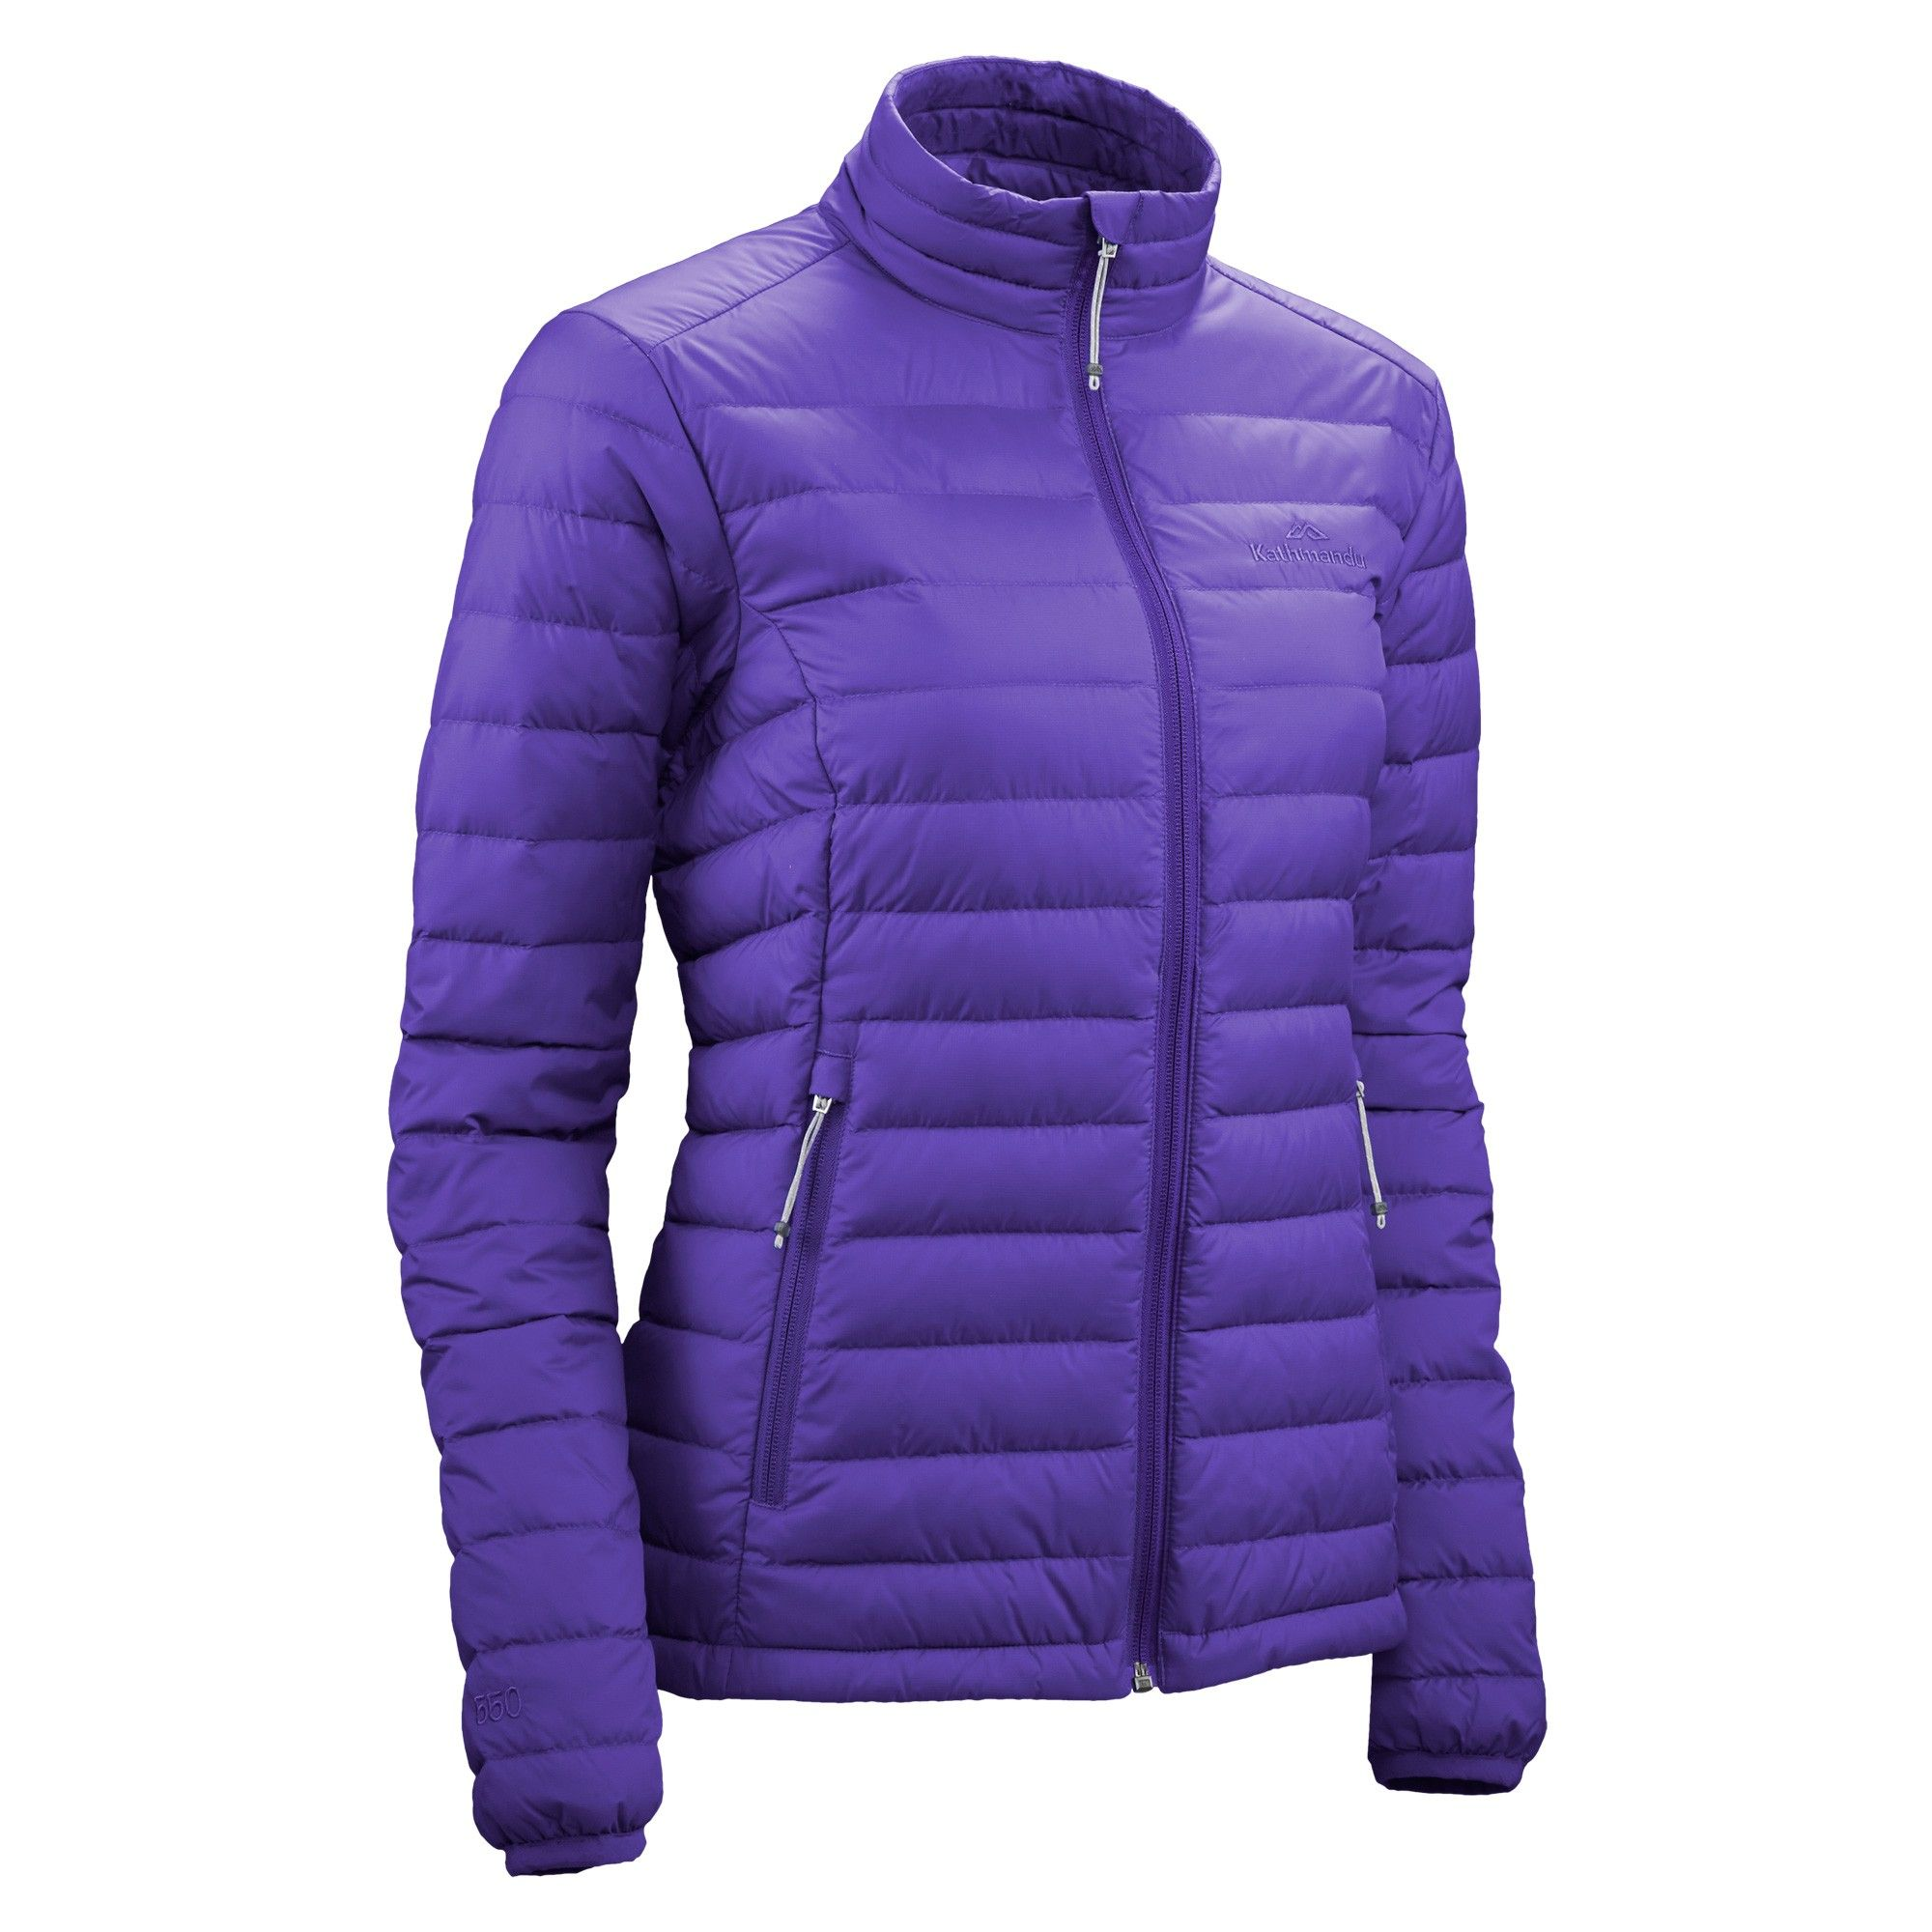 Buy Heli Women's Lightweight Down Jacket - Purple online at ...